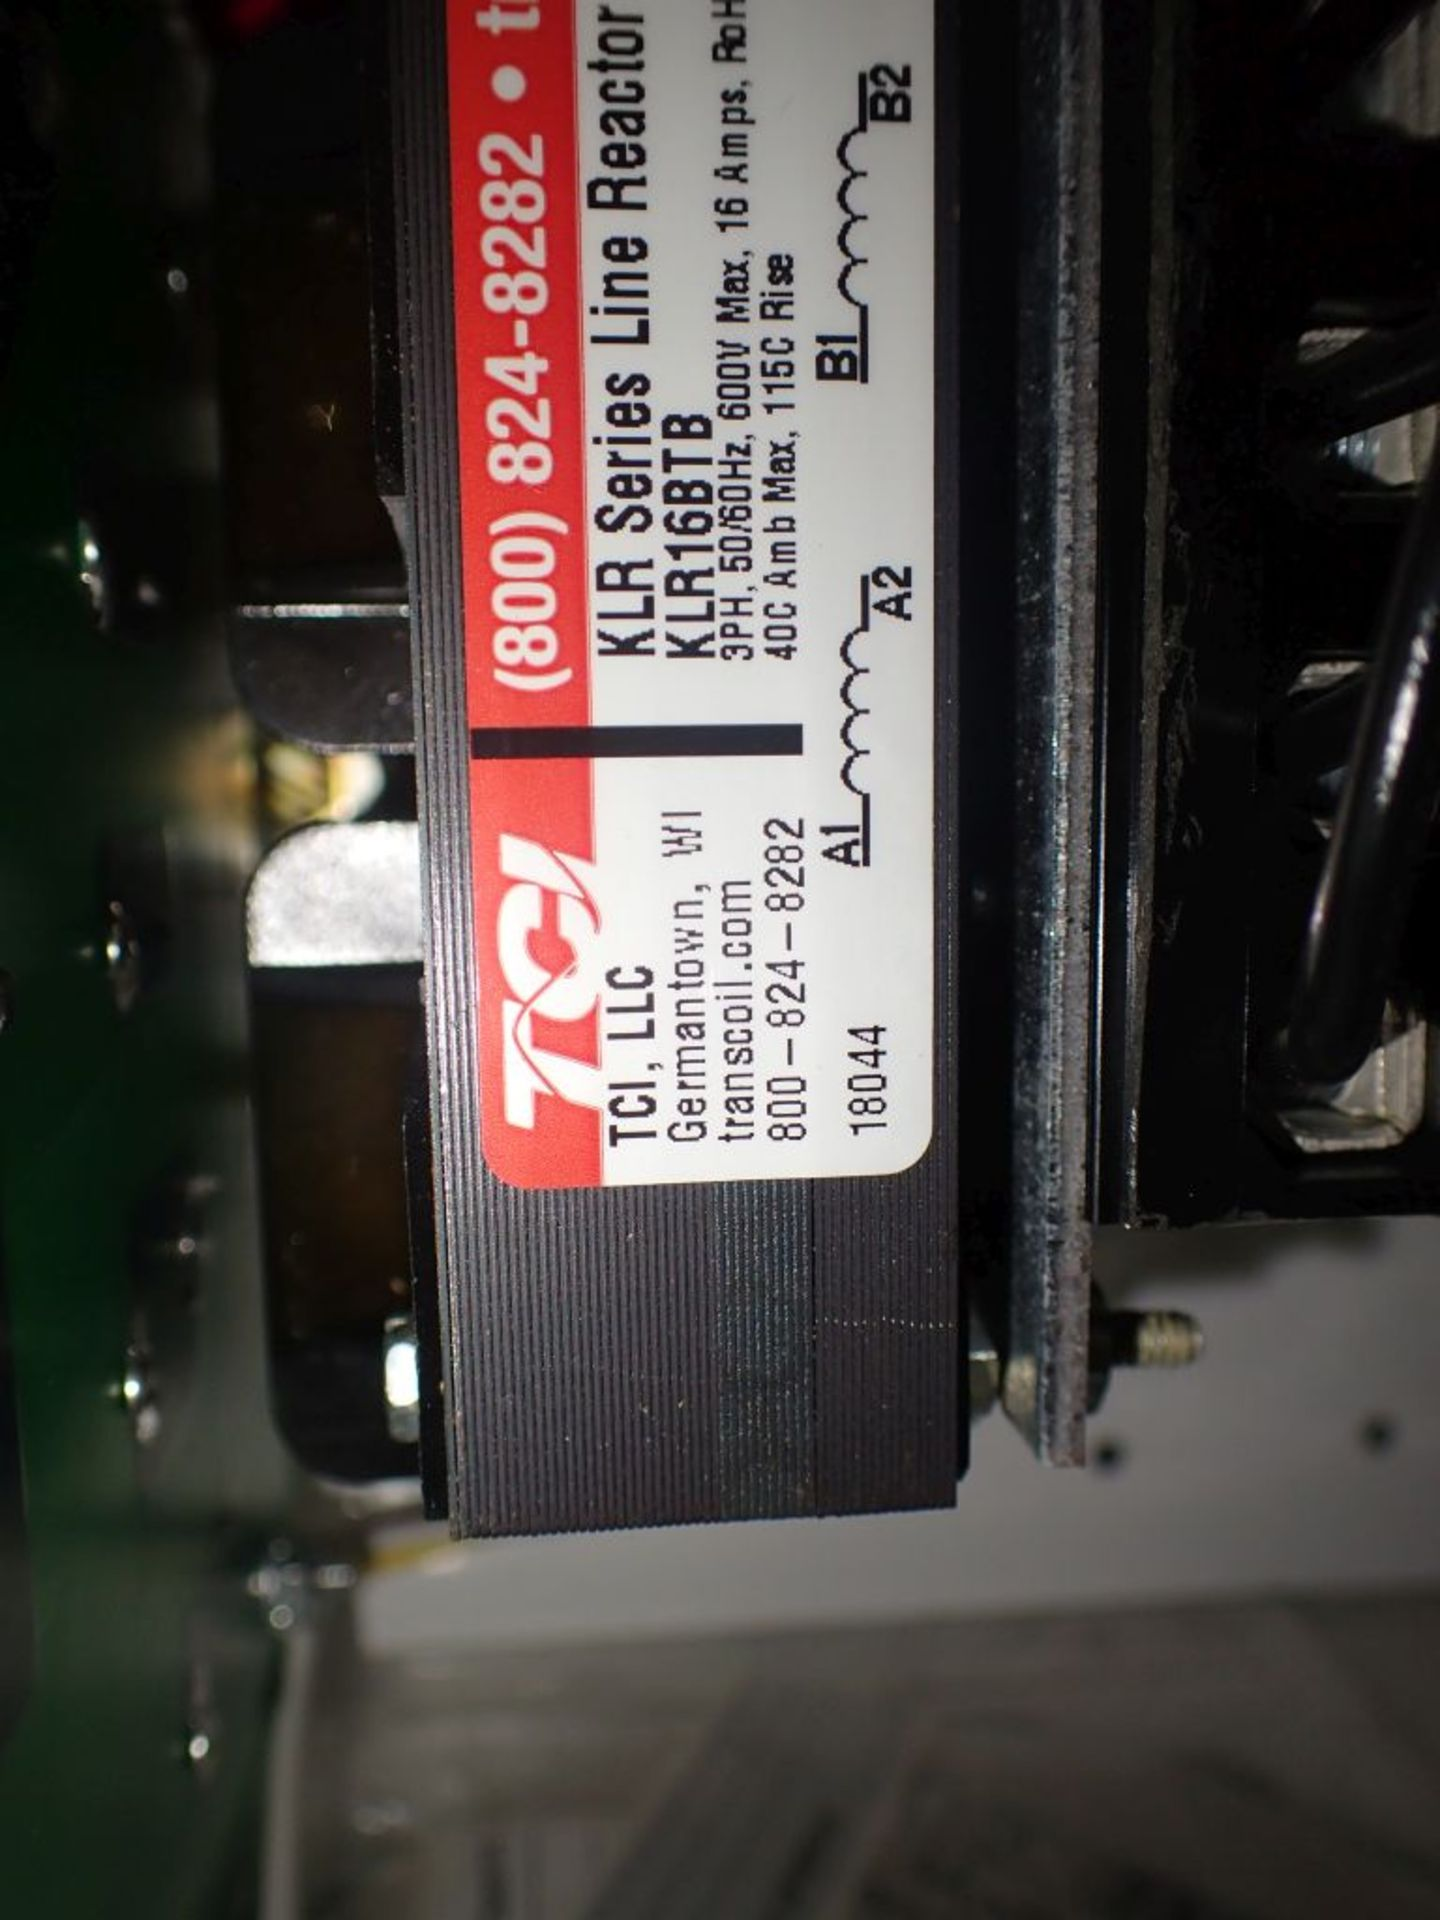 Eaton Freedom 2100 Series Motor Control Center | (2) F206-7A-10HP; (3) F206-15A-10HP; (1) FDRB-100A; - Image 40 of 87